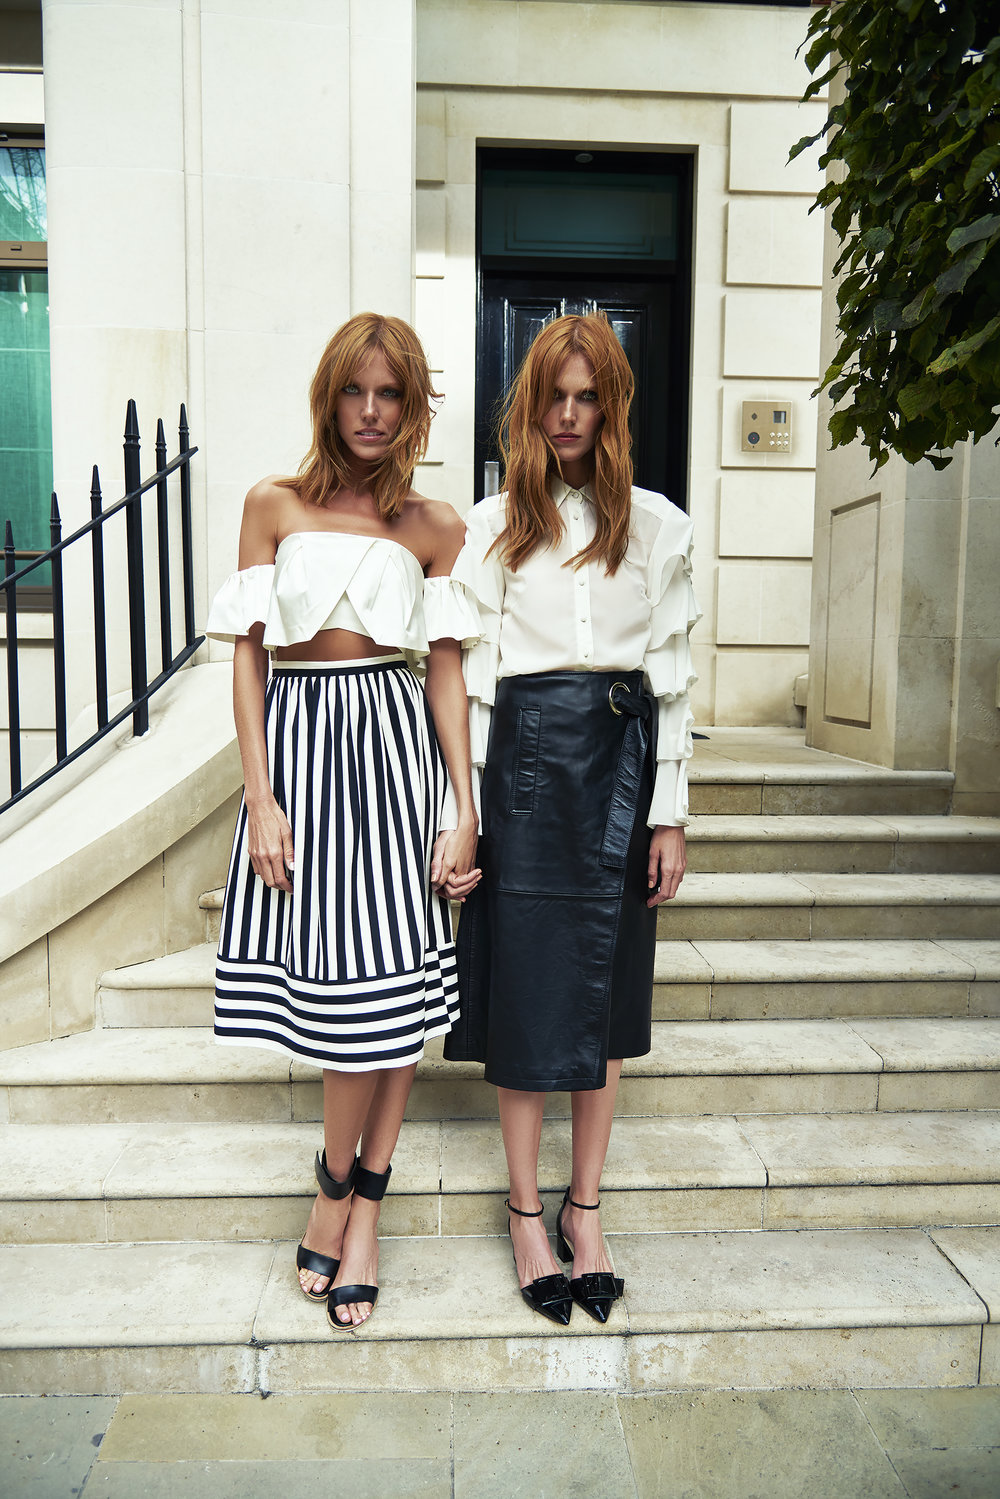 Alice  wears:  Top  Kendall and Kylie , Skirt  Topshop , Shoes  ASOS White    Caroline wears:  Shirt  Lost   Ink , Skirt  Whistles , Shoes  ASOS